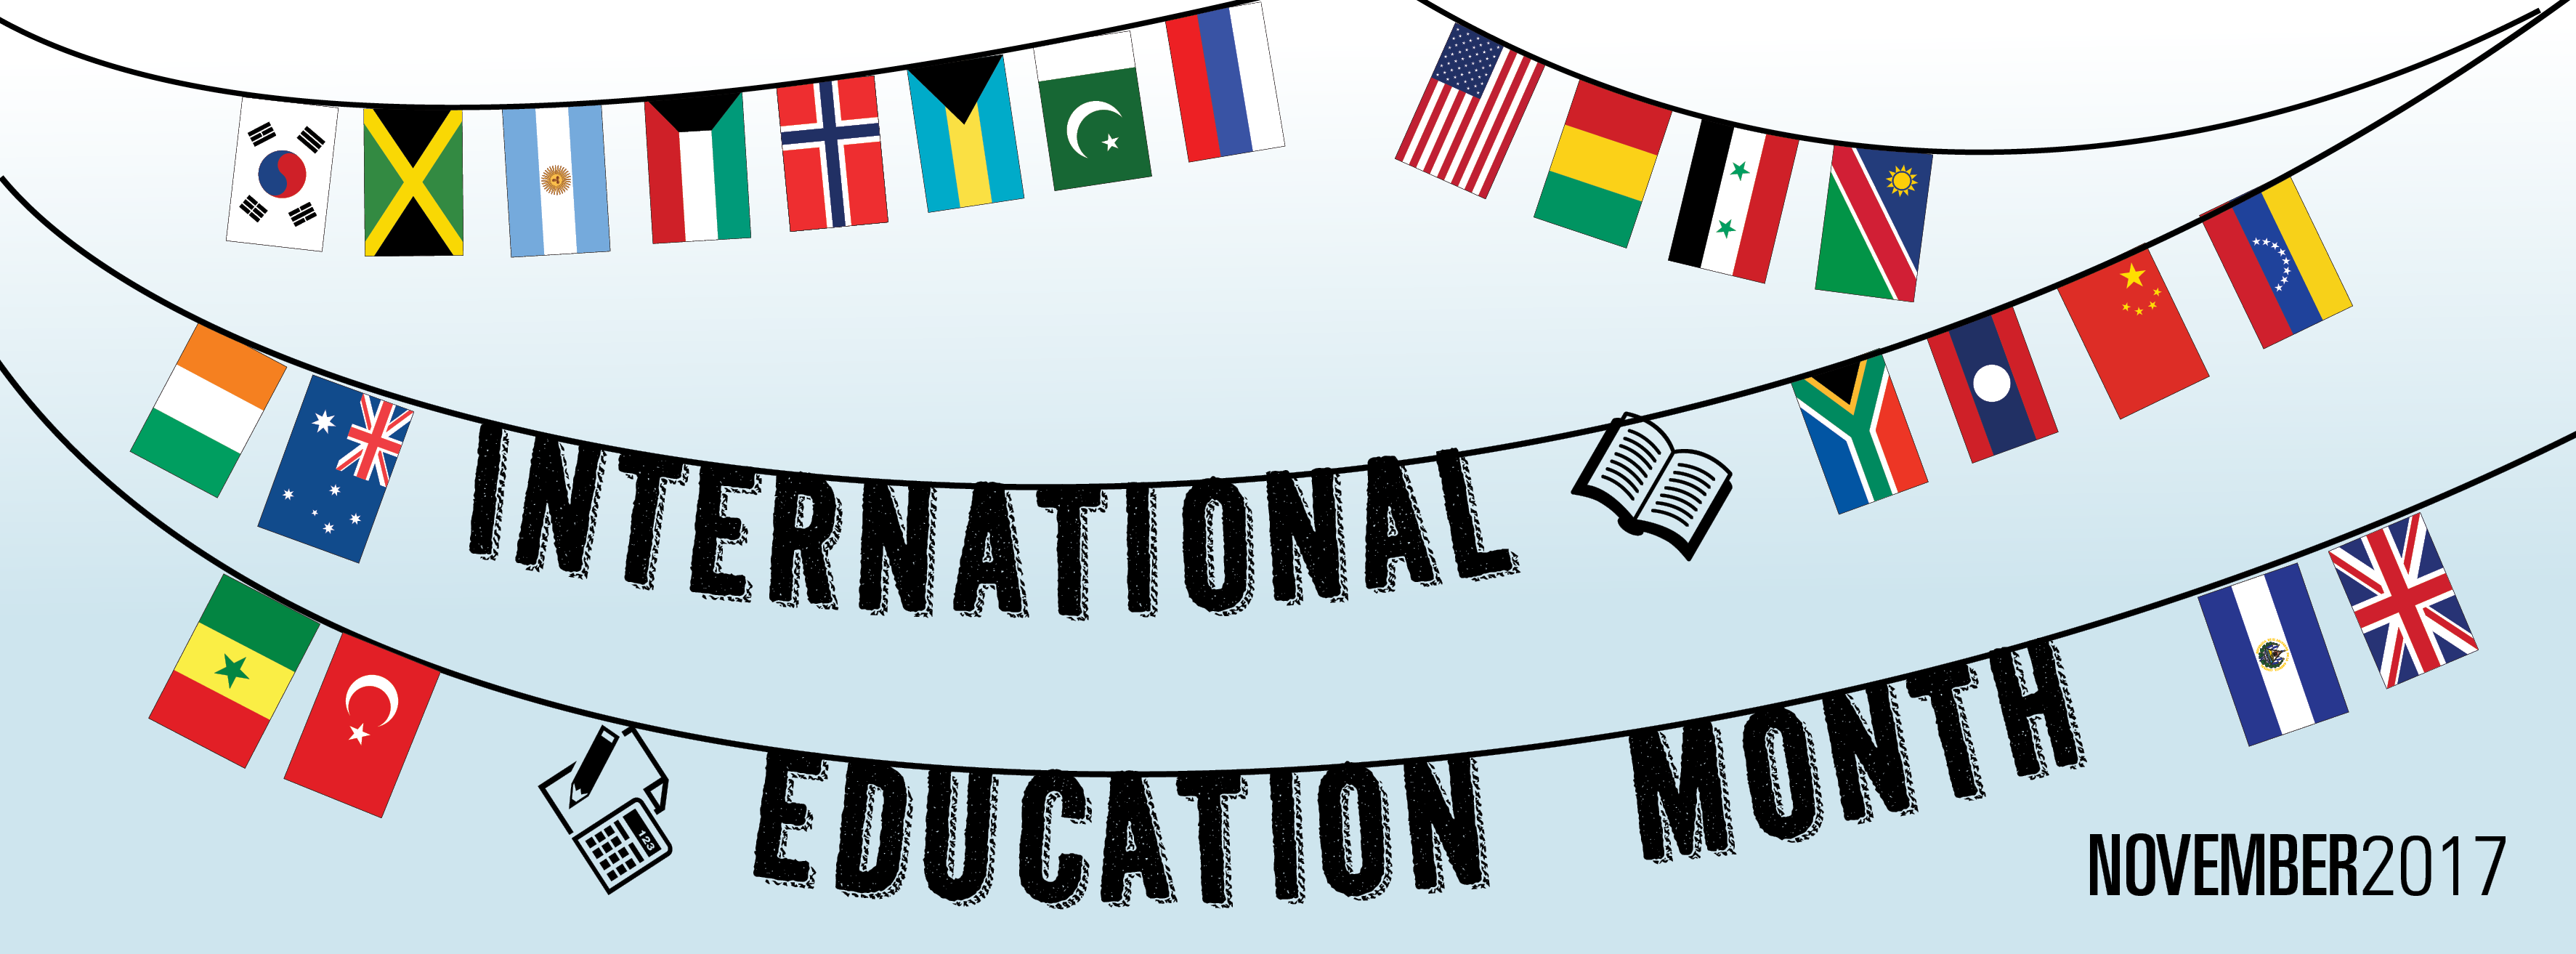 International Education Month 2017